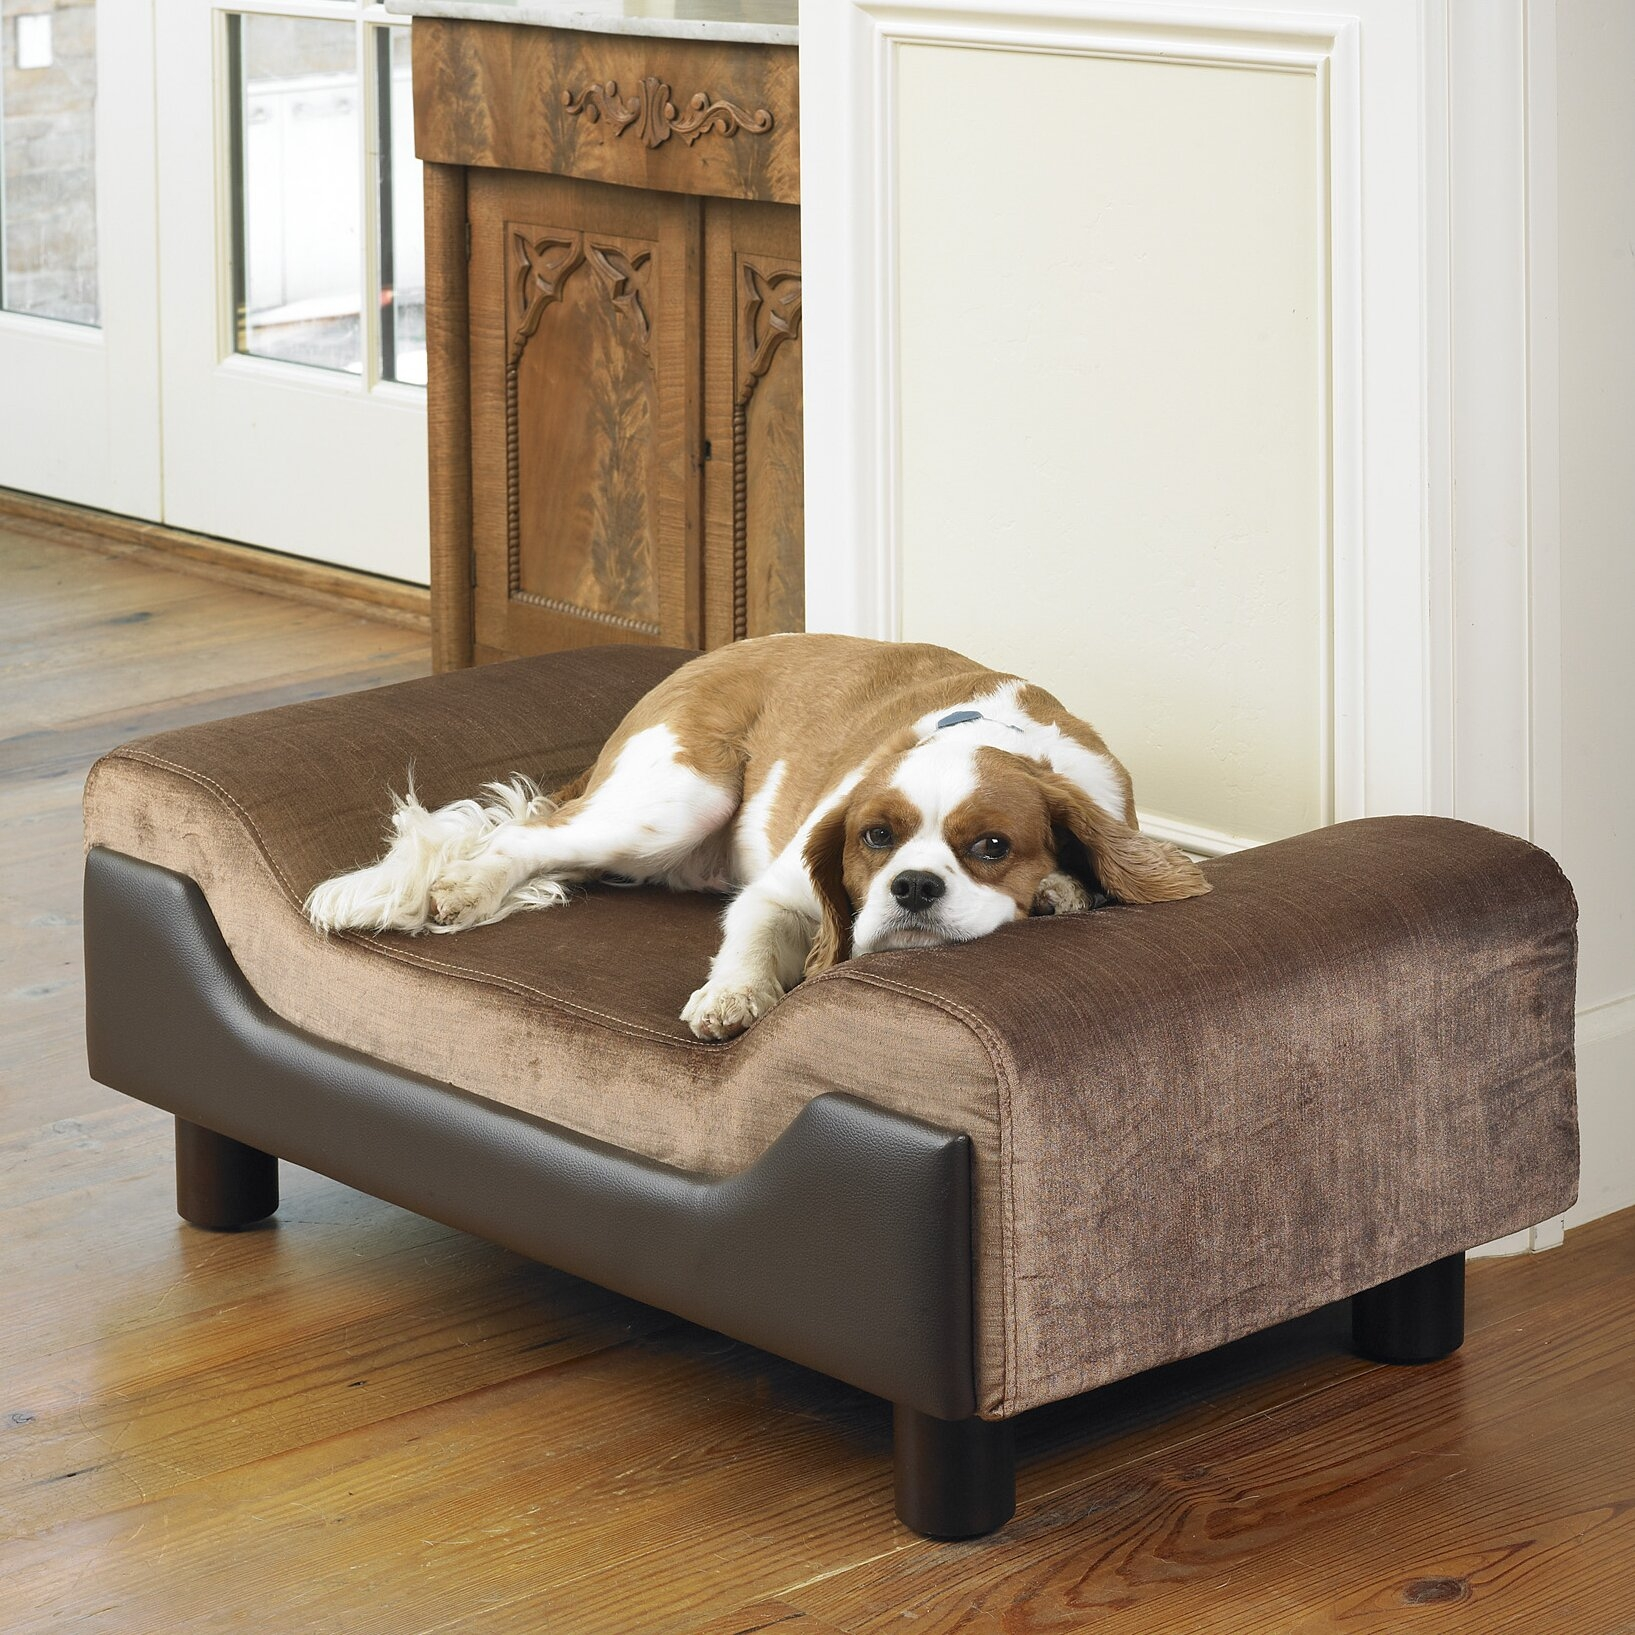 Dog / Pet Bed Elevated Contour Medium Size Contemporary Furniture Style  Sofa Day Bed